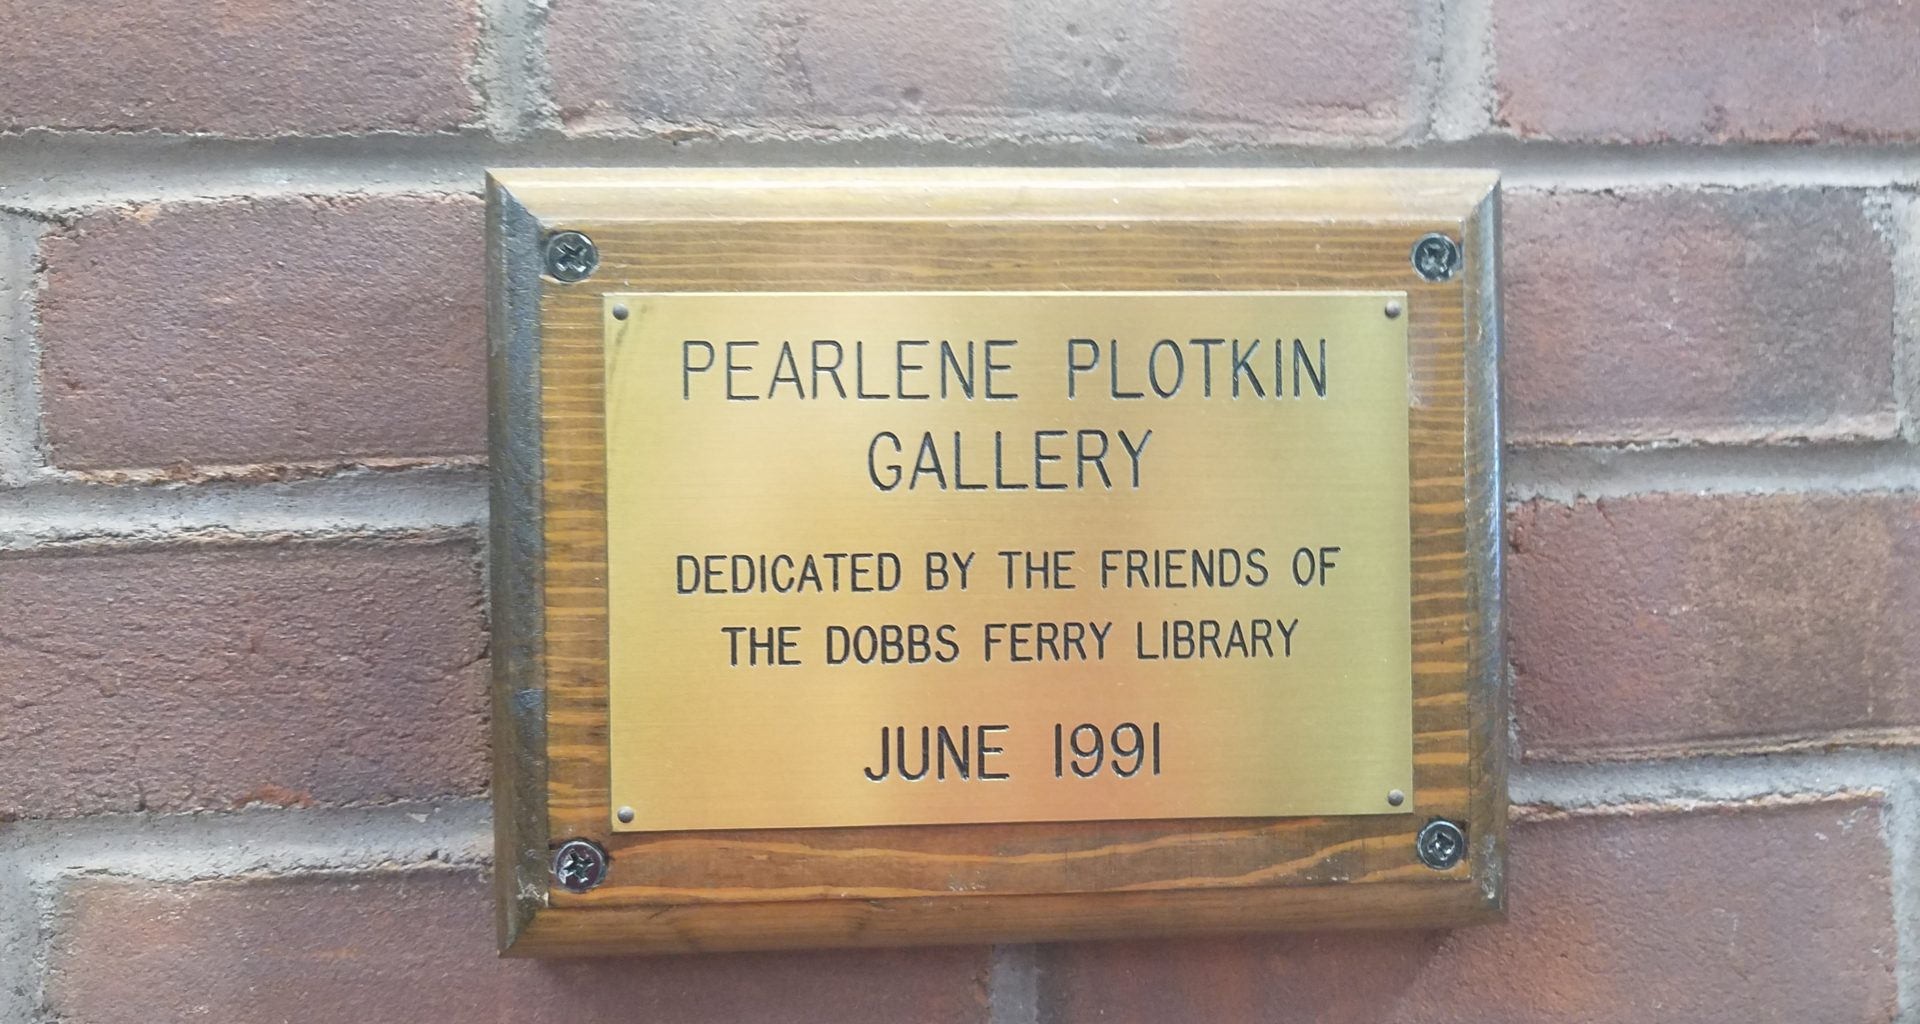 The Pearlene Plotkin Gallery